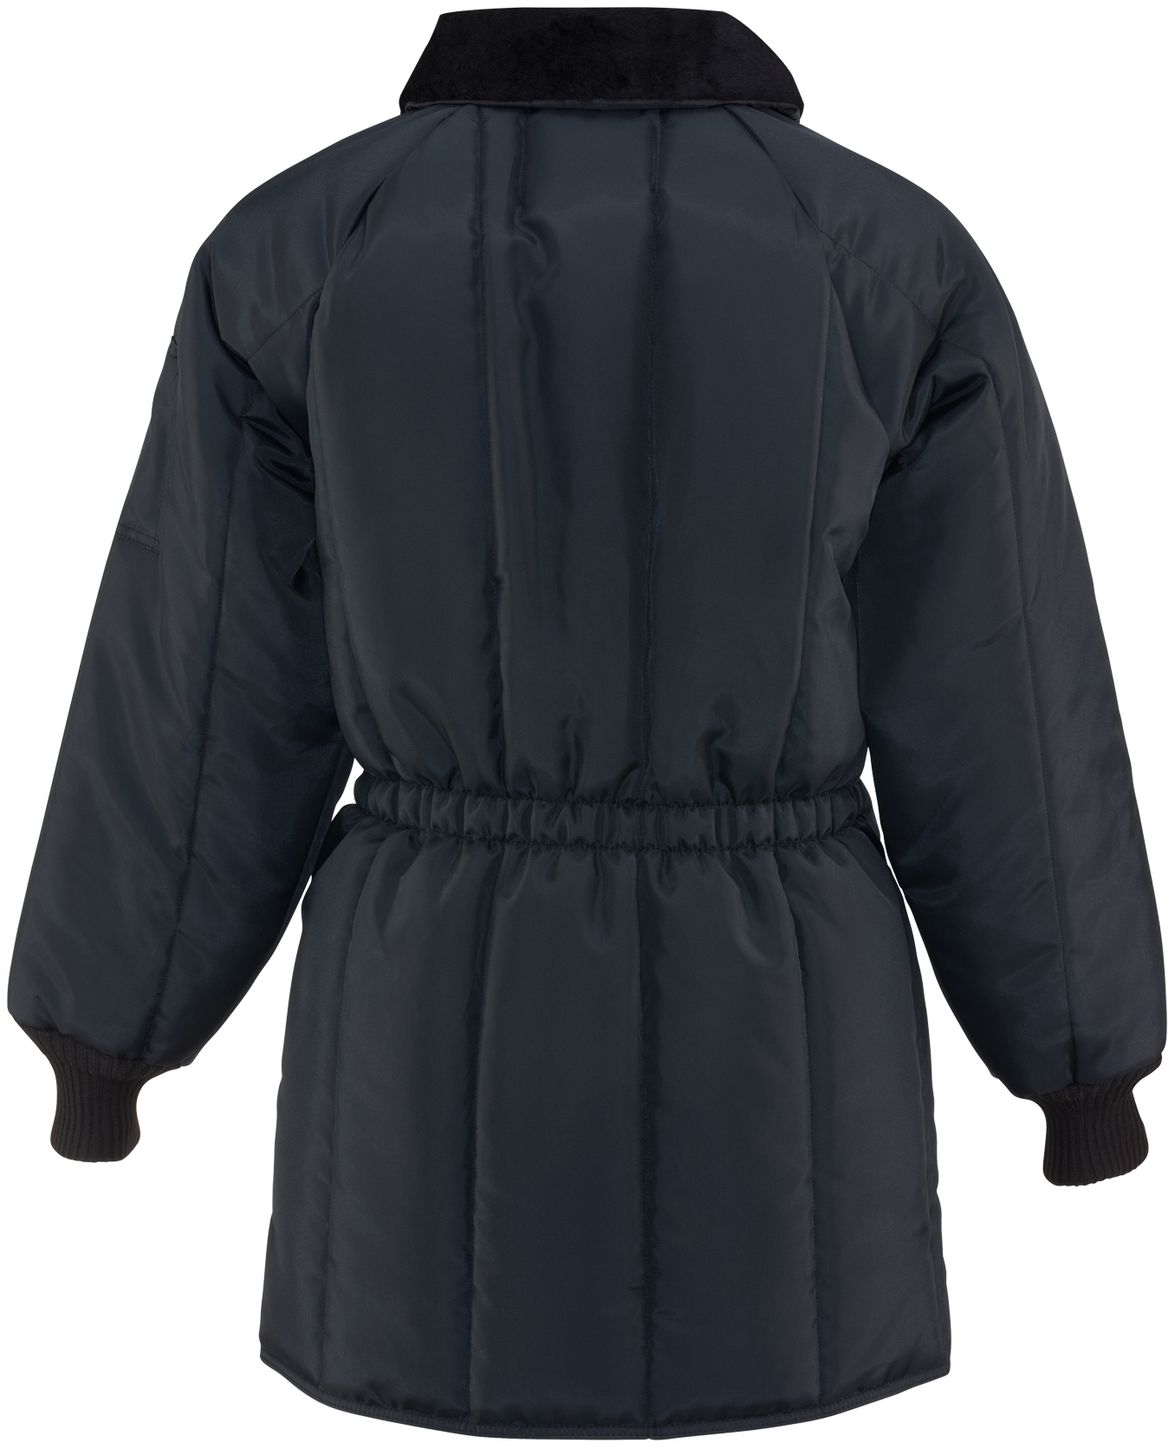 RefrigiWea 0361 Iron-Tuff Winterseal Cold Weather Work Coat Thigh Length Back